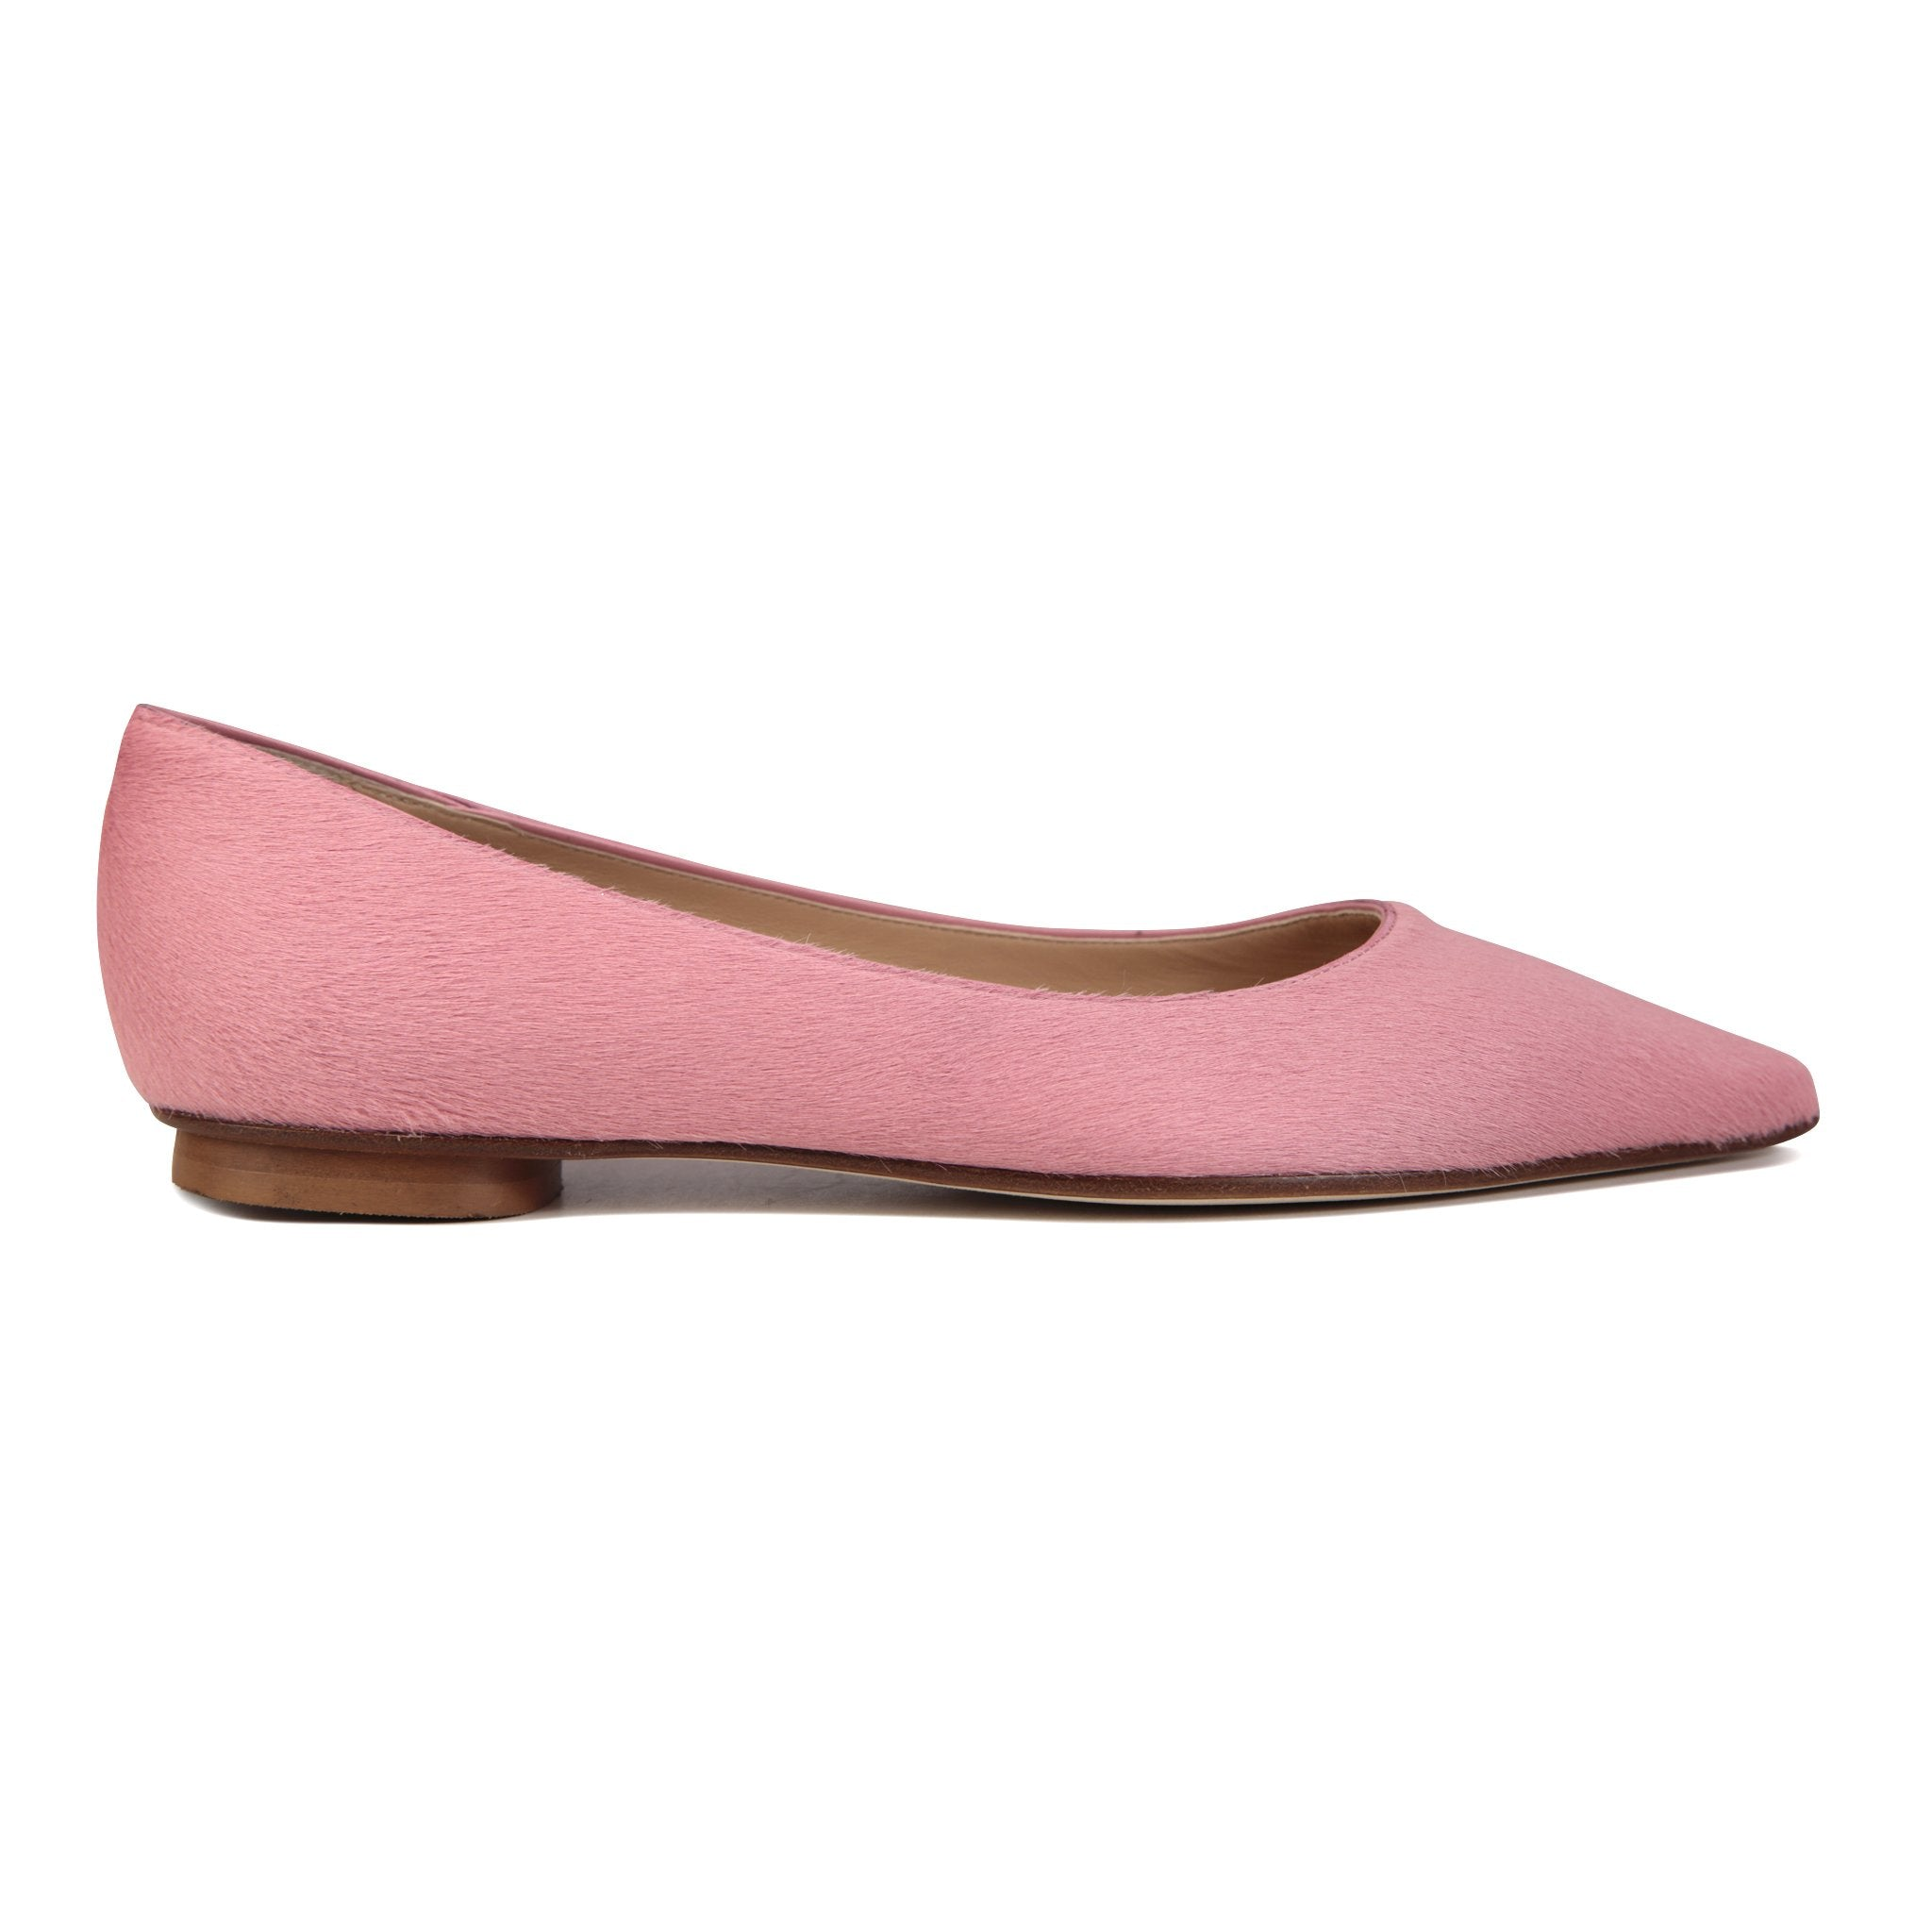 COMO - Calf Hair Candy Pink, VIAJIYU - Women's Hand Made Sustainable Luxury Shoes. Made in Italy. Made to Order.